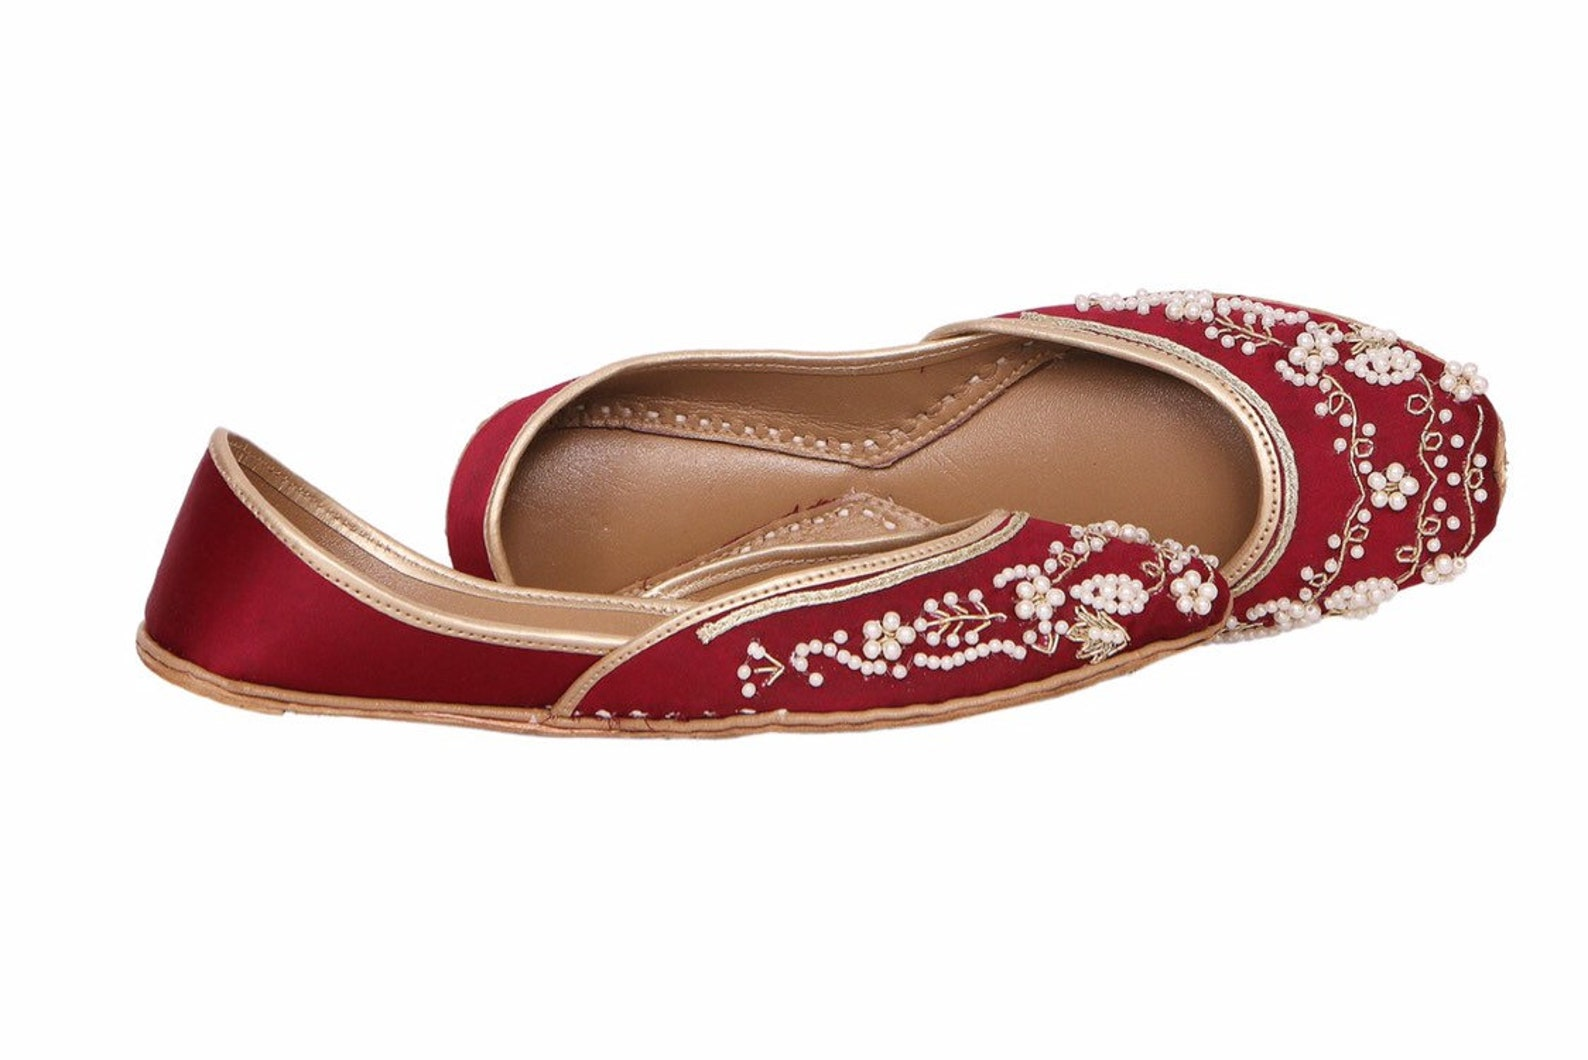 red base and pearl embellished ballet flat shoes red jutis red slip ons mojari red khussa